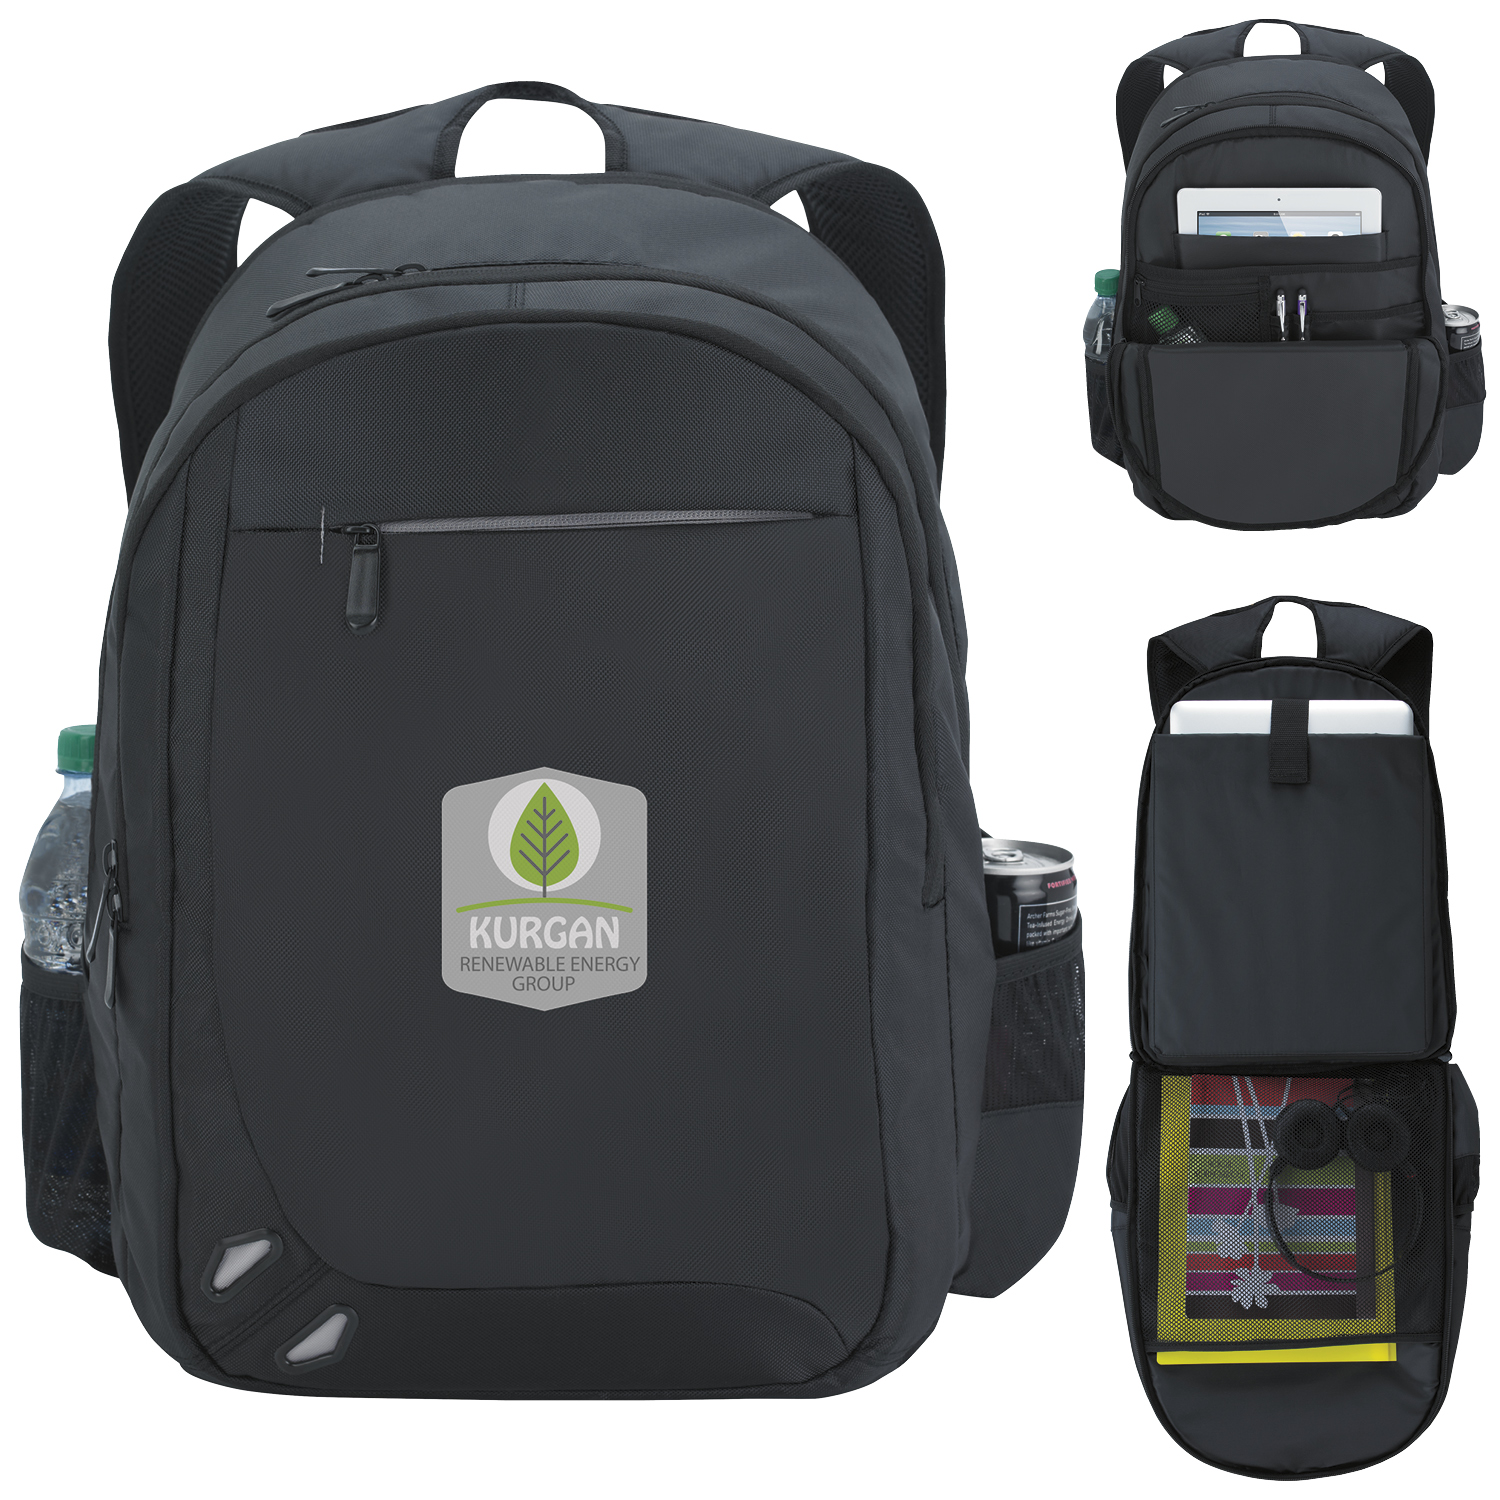 Atchison Premier Backpack - 1 Colour Imprint